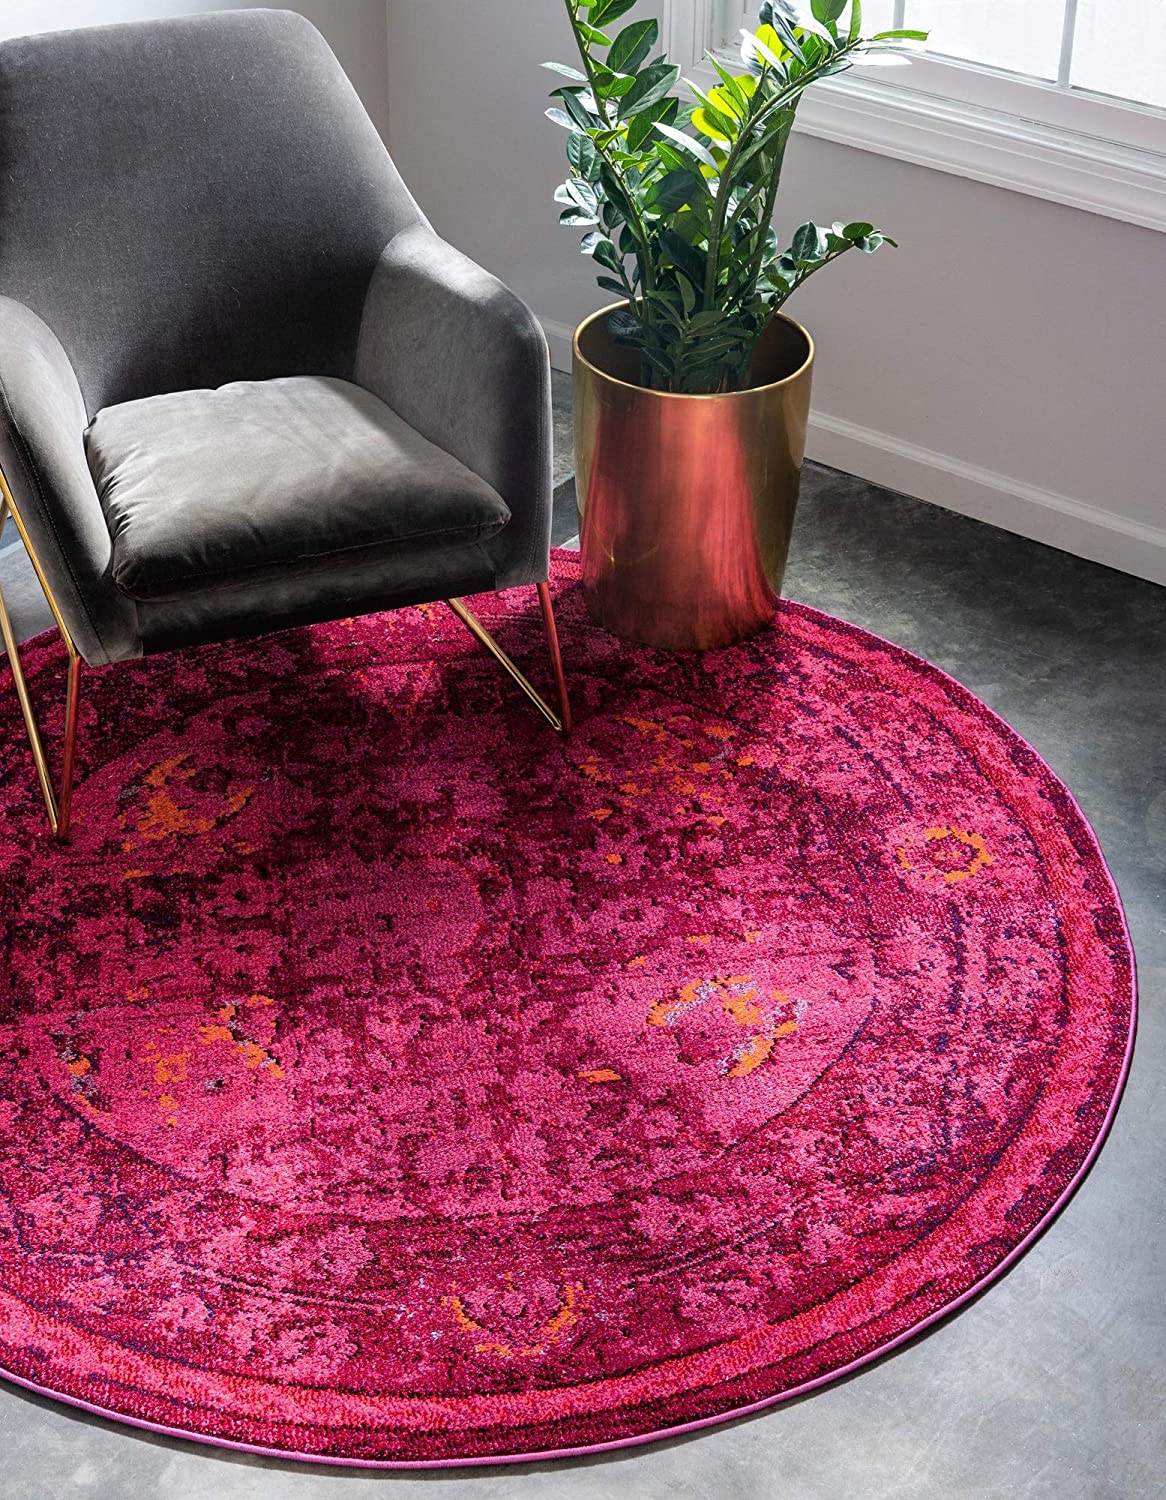 Rugs.com Fleur shipfree Collection Rug – 8' Round Medium-Pile Some reservation Red Ru